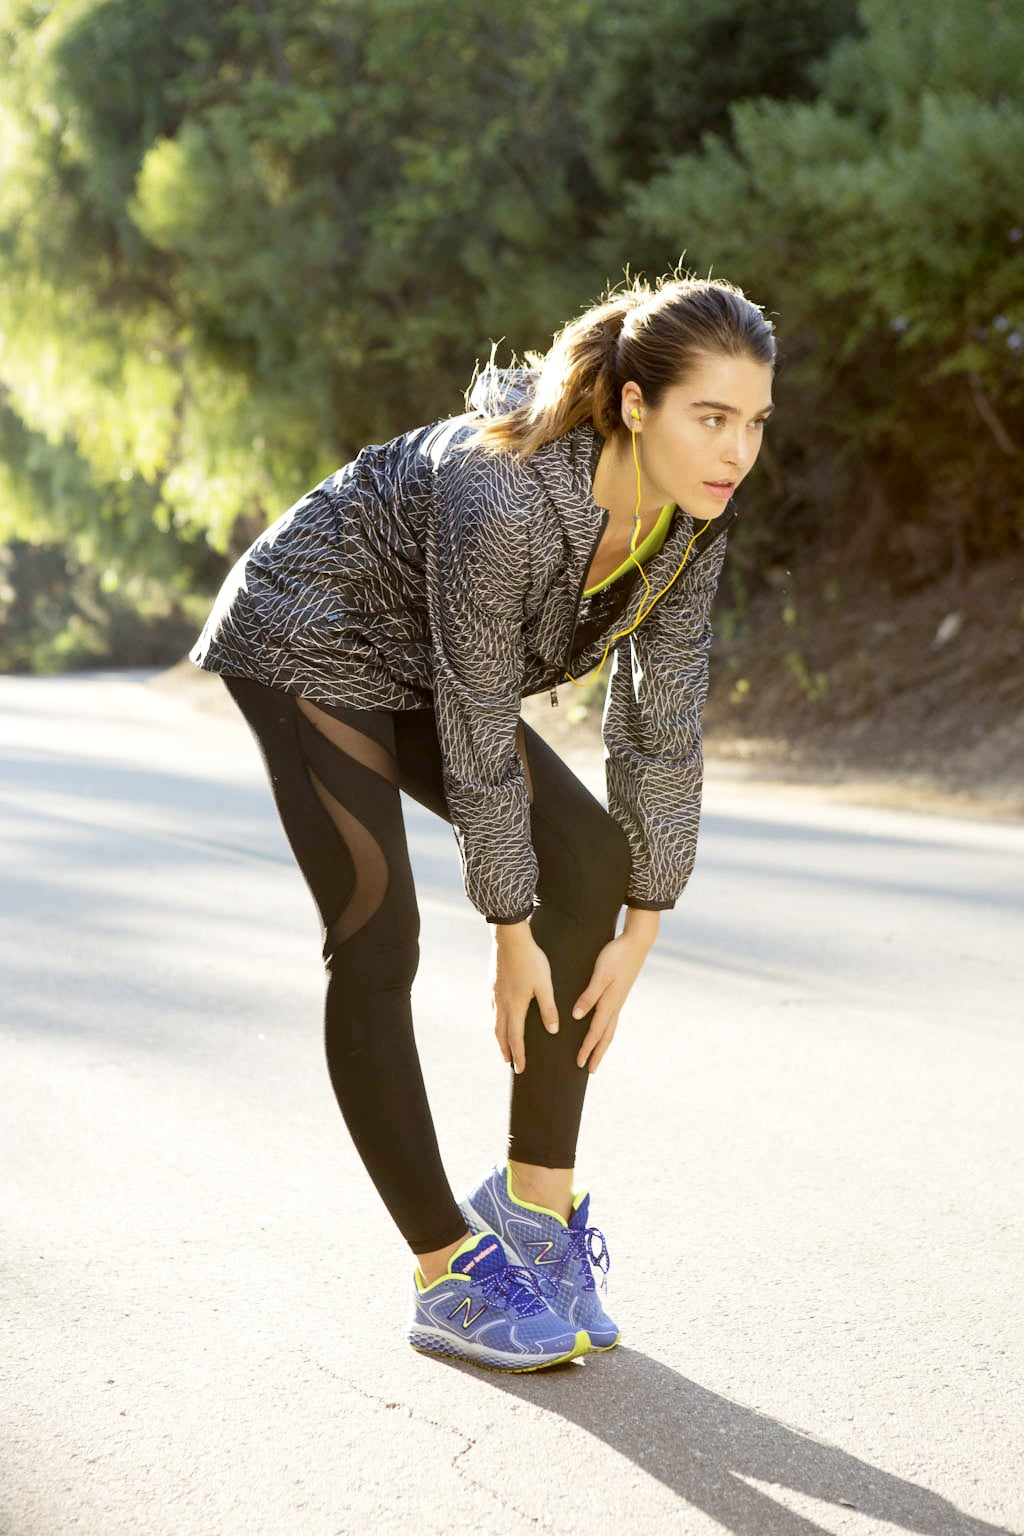 5 Side Effects of Working Out — and How to Avoid Them